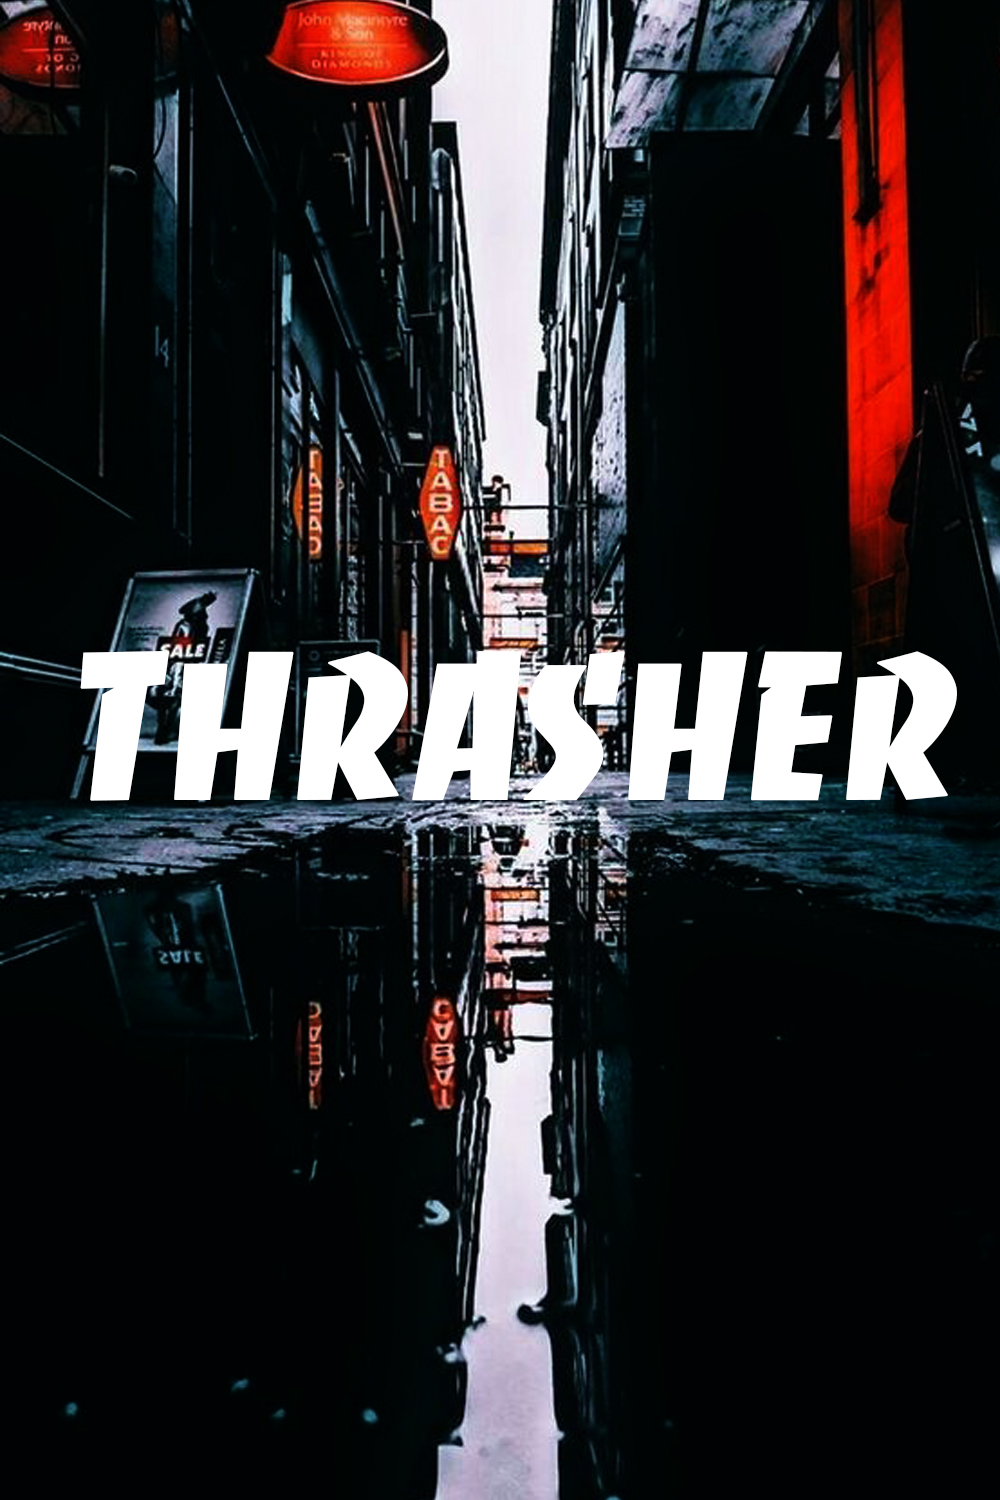 Thrasher Wallpaper Hd Download In 2020 Iphone Wallpaper Images